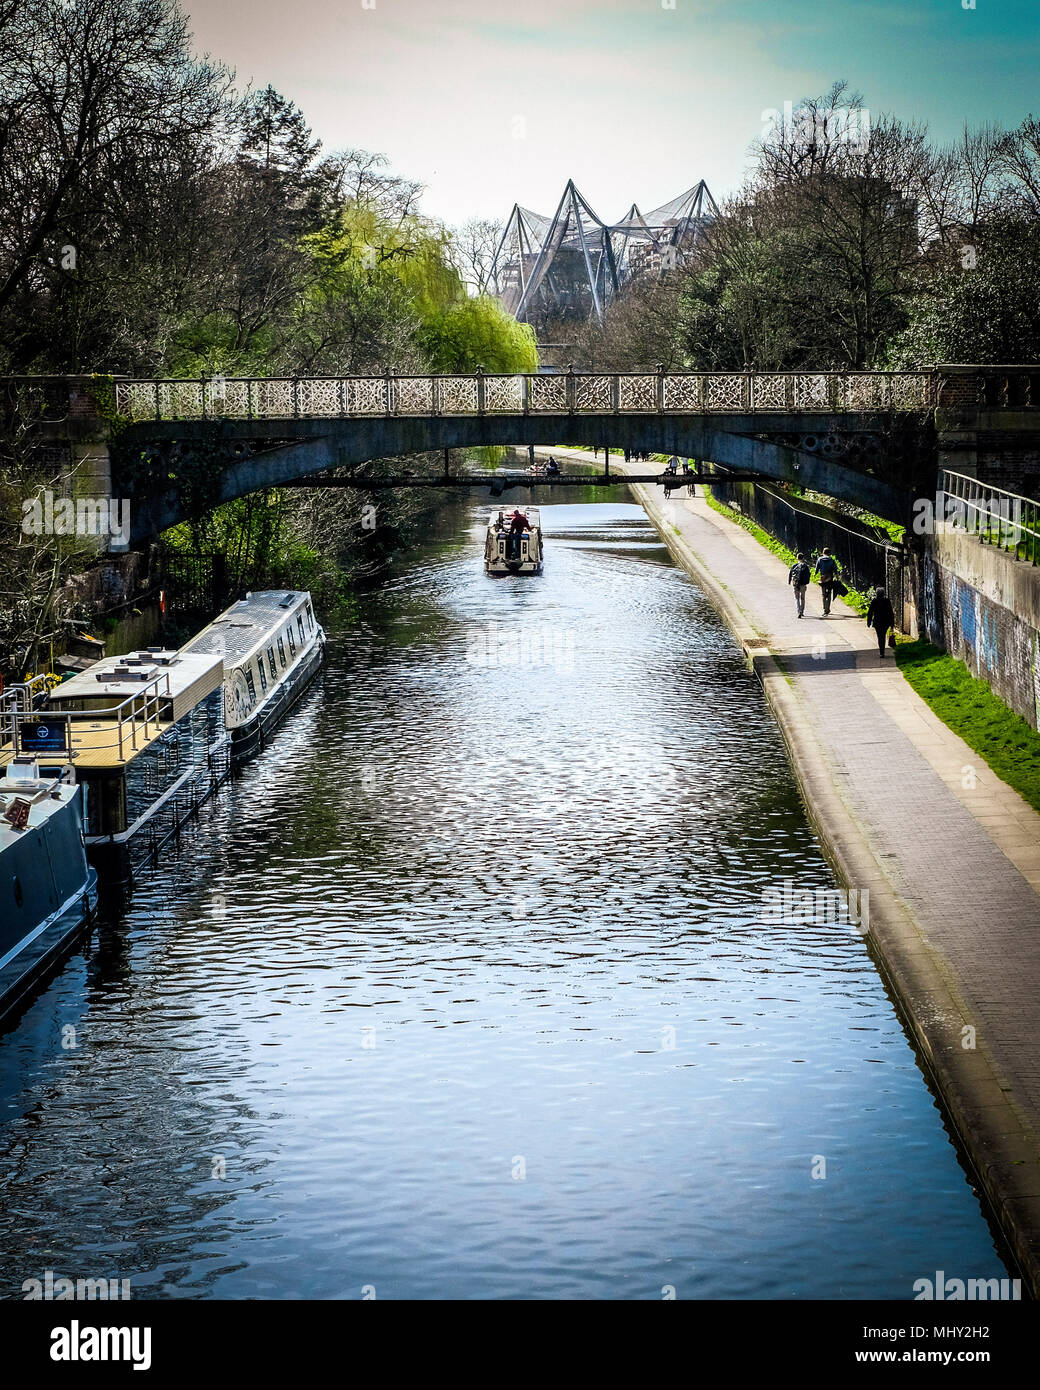 A narrow boat passes under a brigde on regents canal passing London Zoo in Regents Park, London Stock Photo